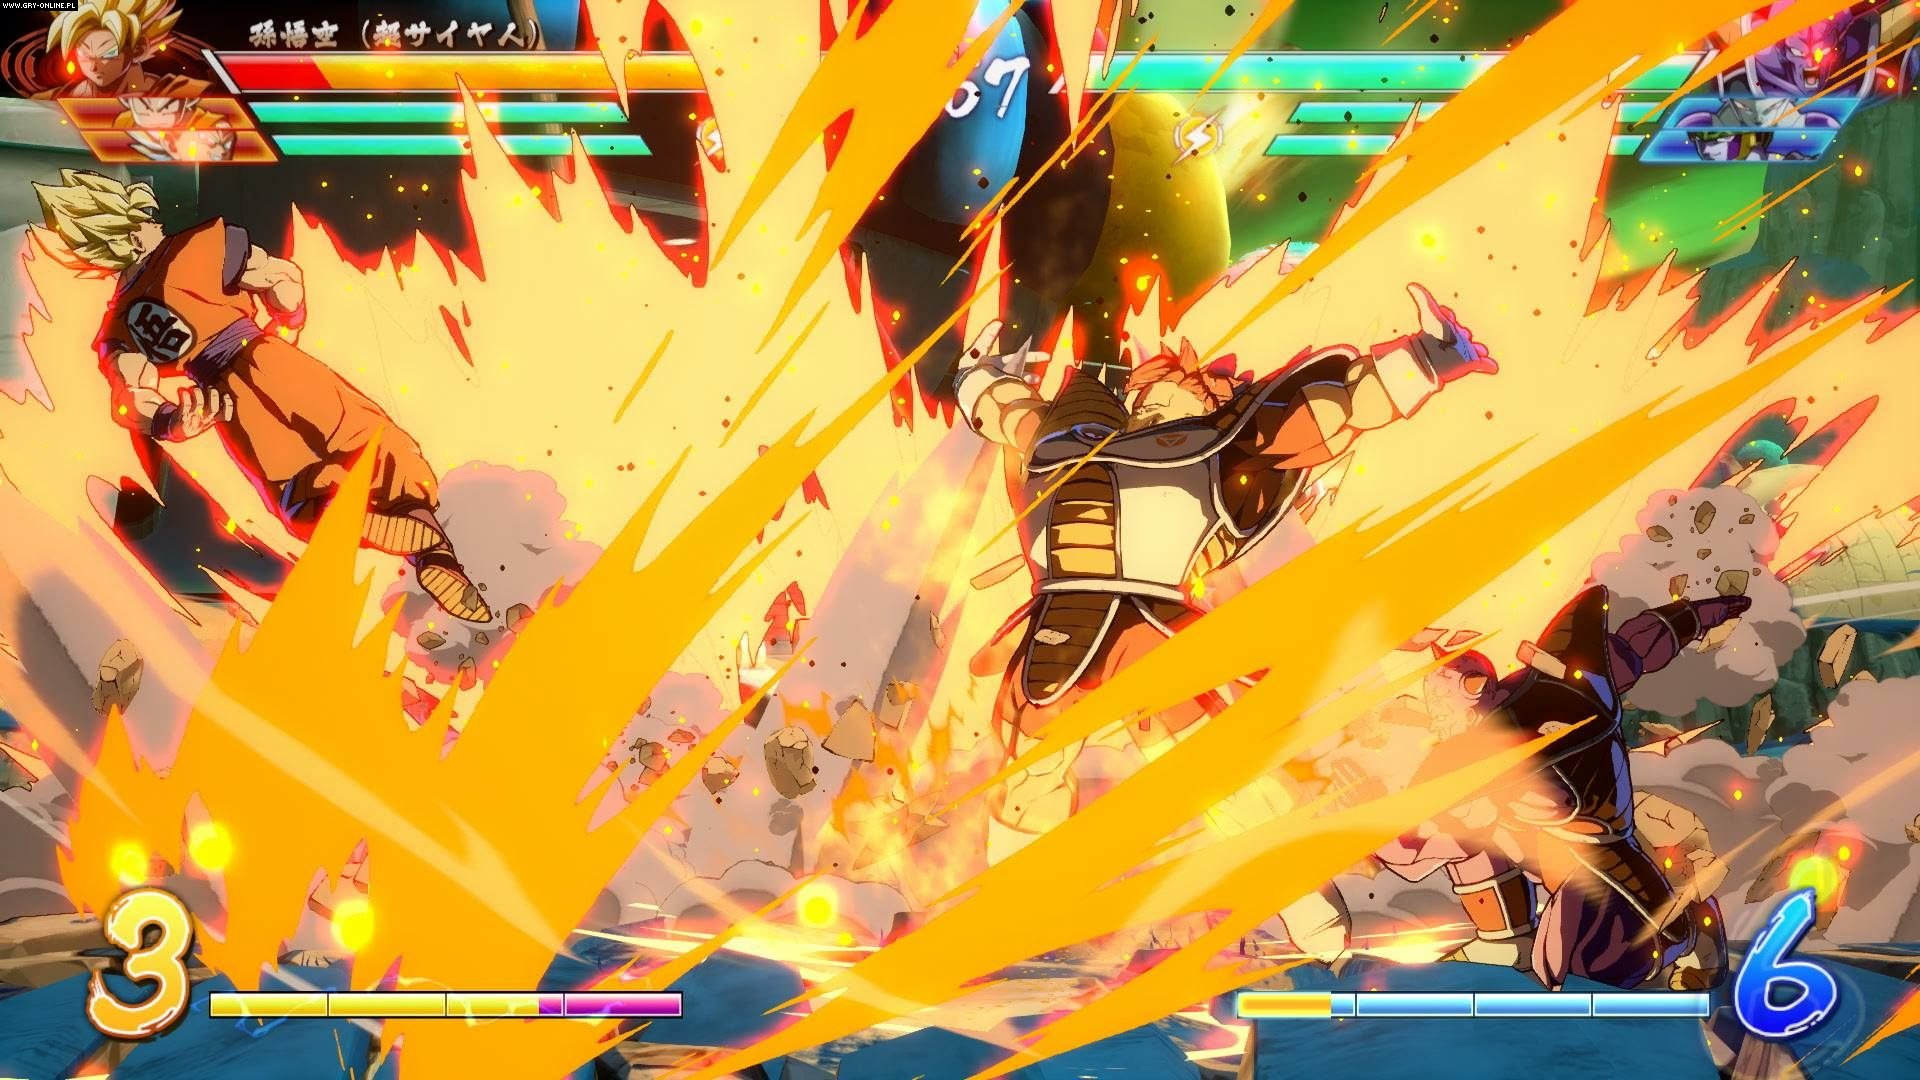 Dragon Ball FighterZ PC, PS4, XONE, Switch Gry Screen 159/230, Arc System Works, Bandai Namco Entertainment